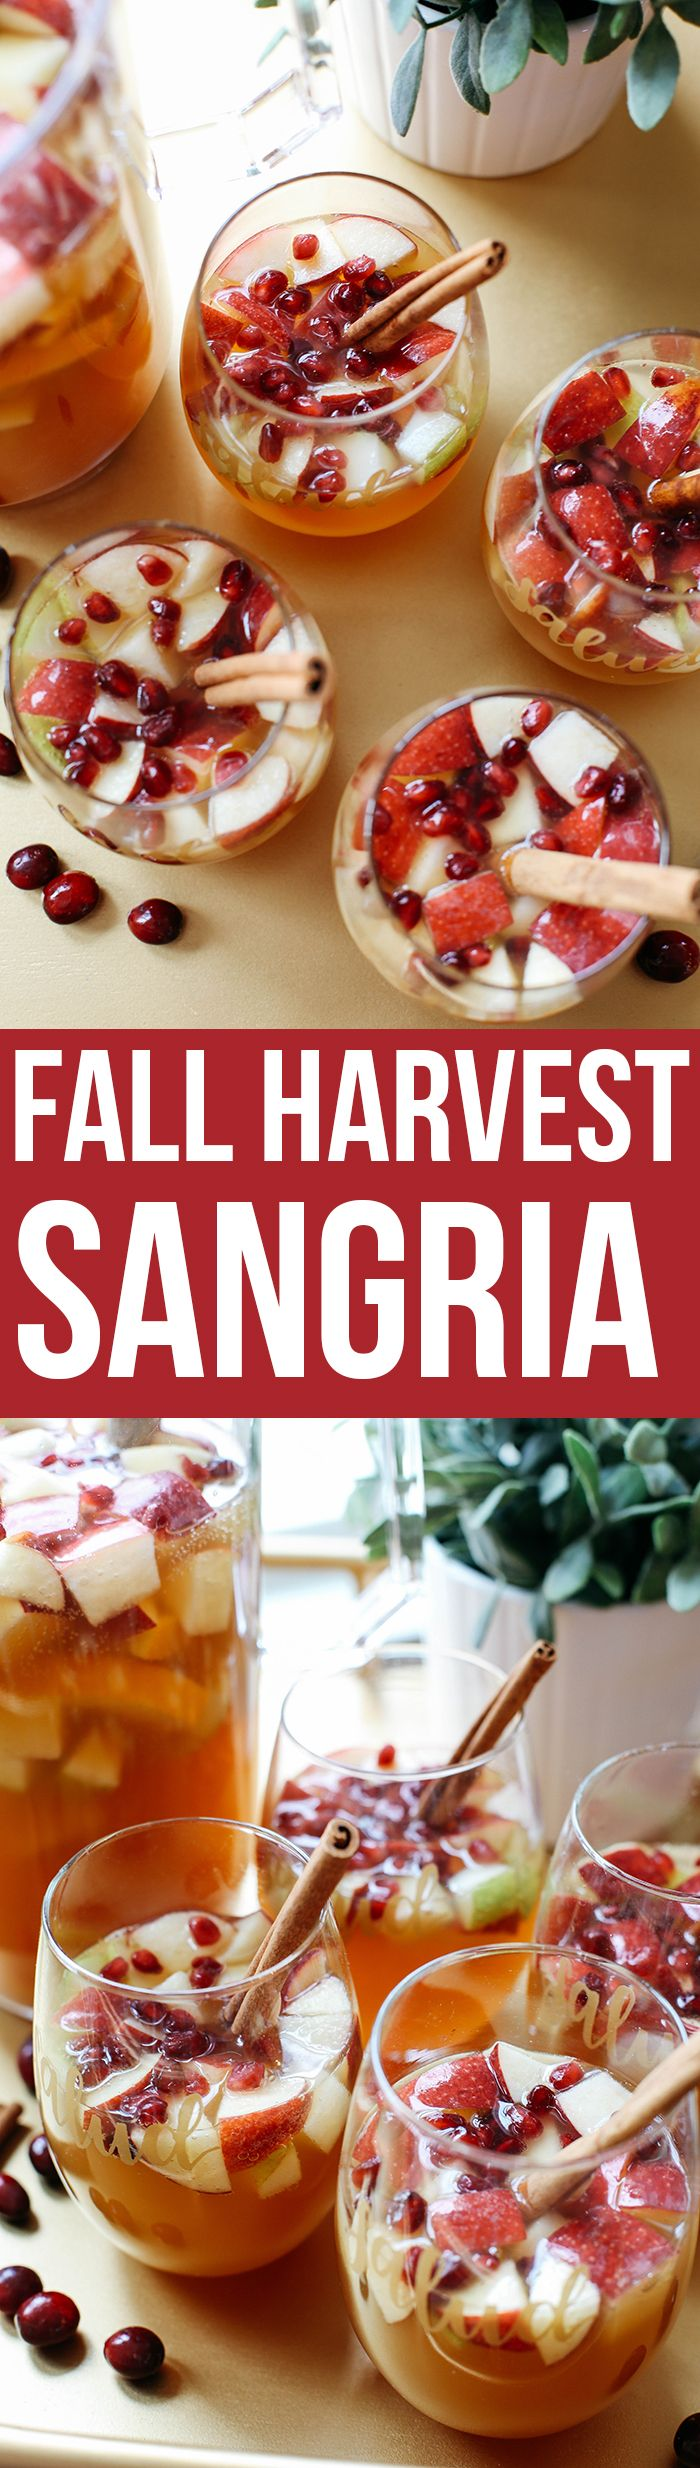 Fall Harvest Sangria - Eat Yourself Skinny